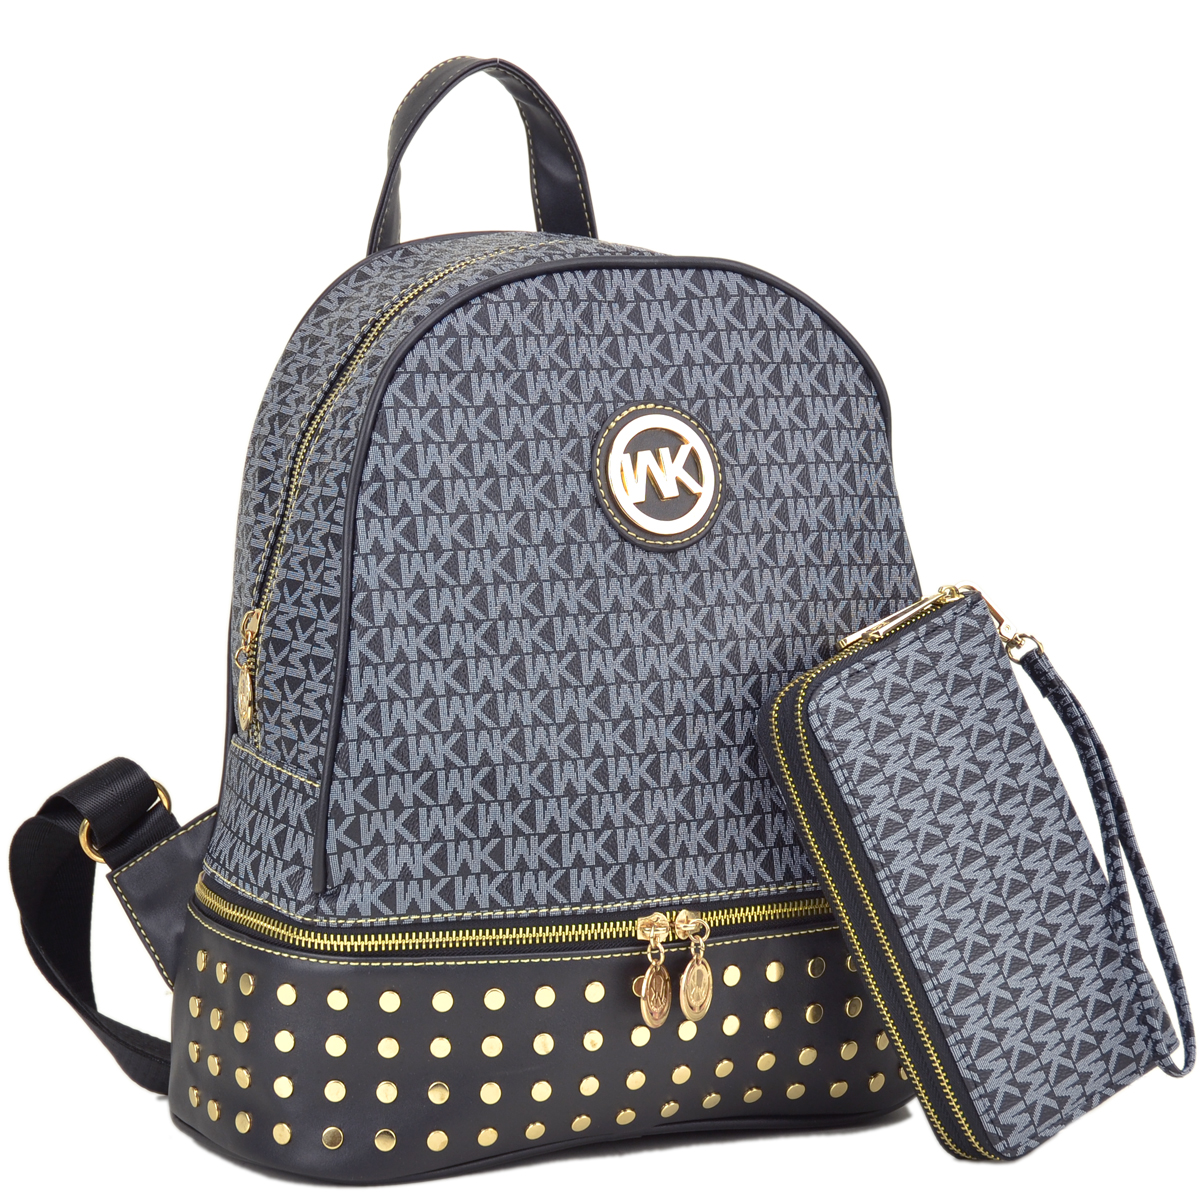 Wendy Keen Monogram Medium Faux Leather Studded Backpack with Matching wallet